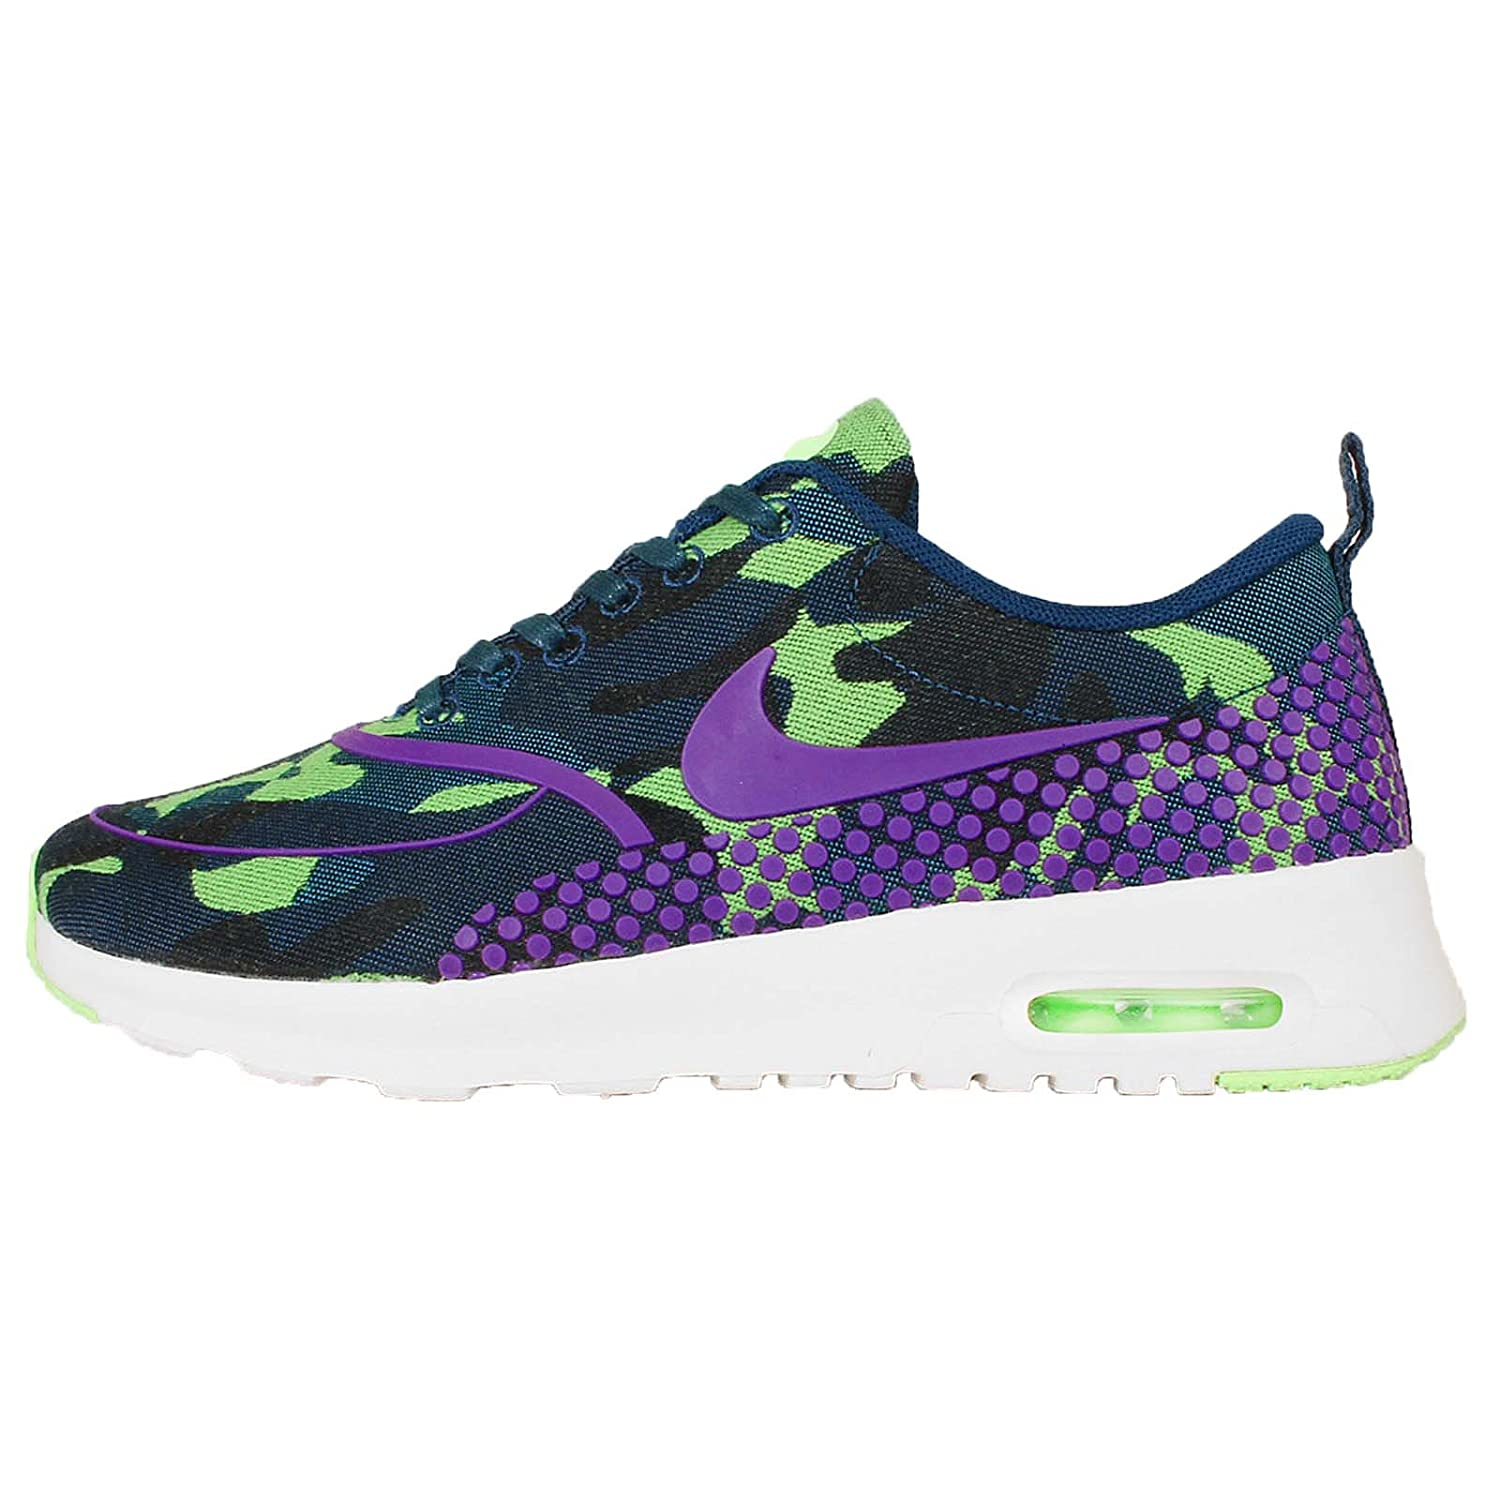 Nike Women's W Air Max Thea JCRD PRM Running Shoes